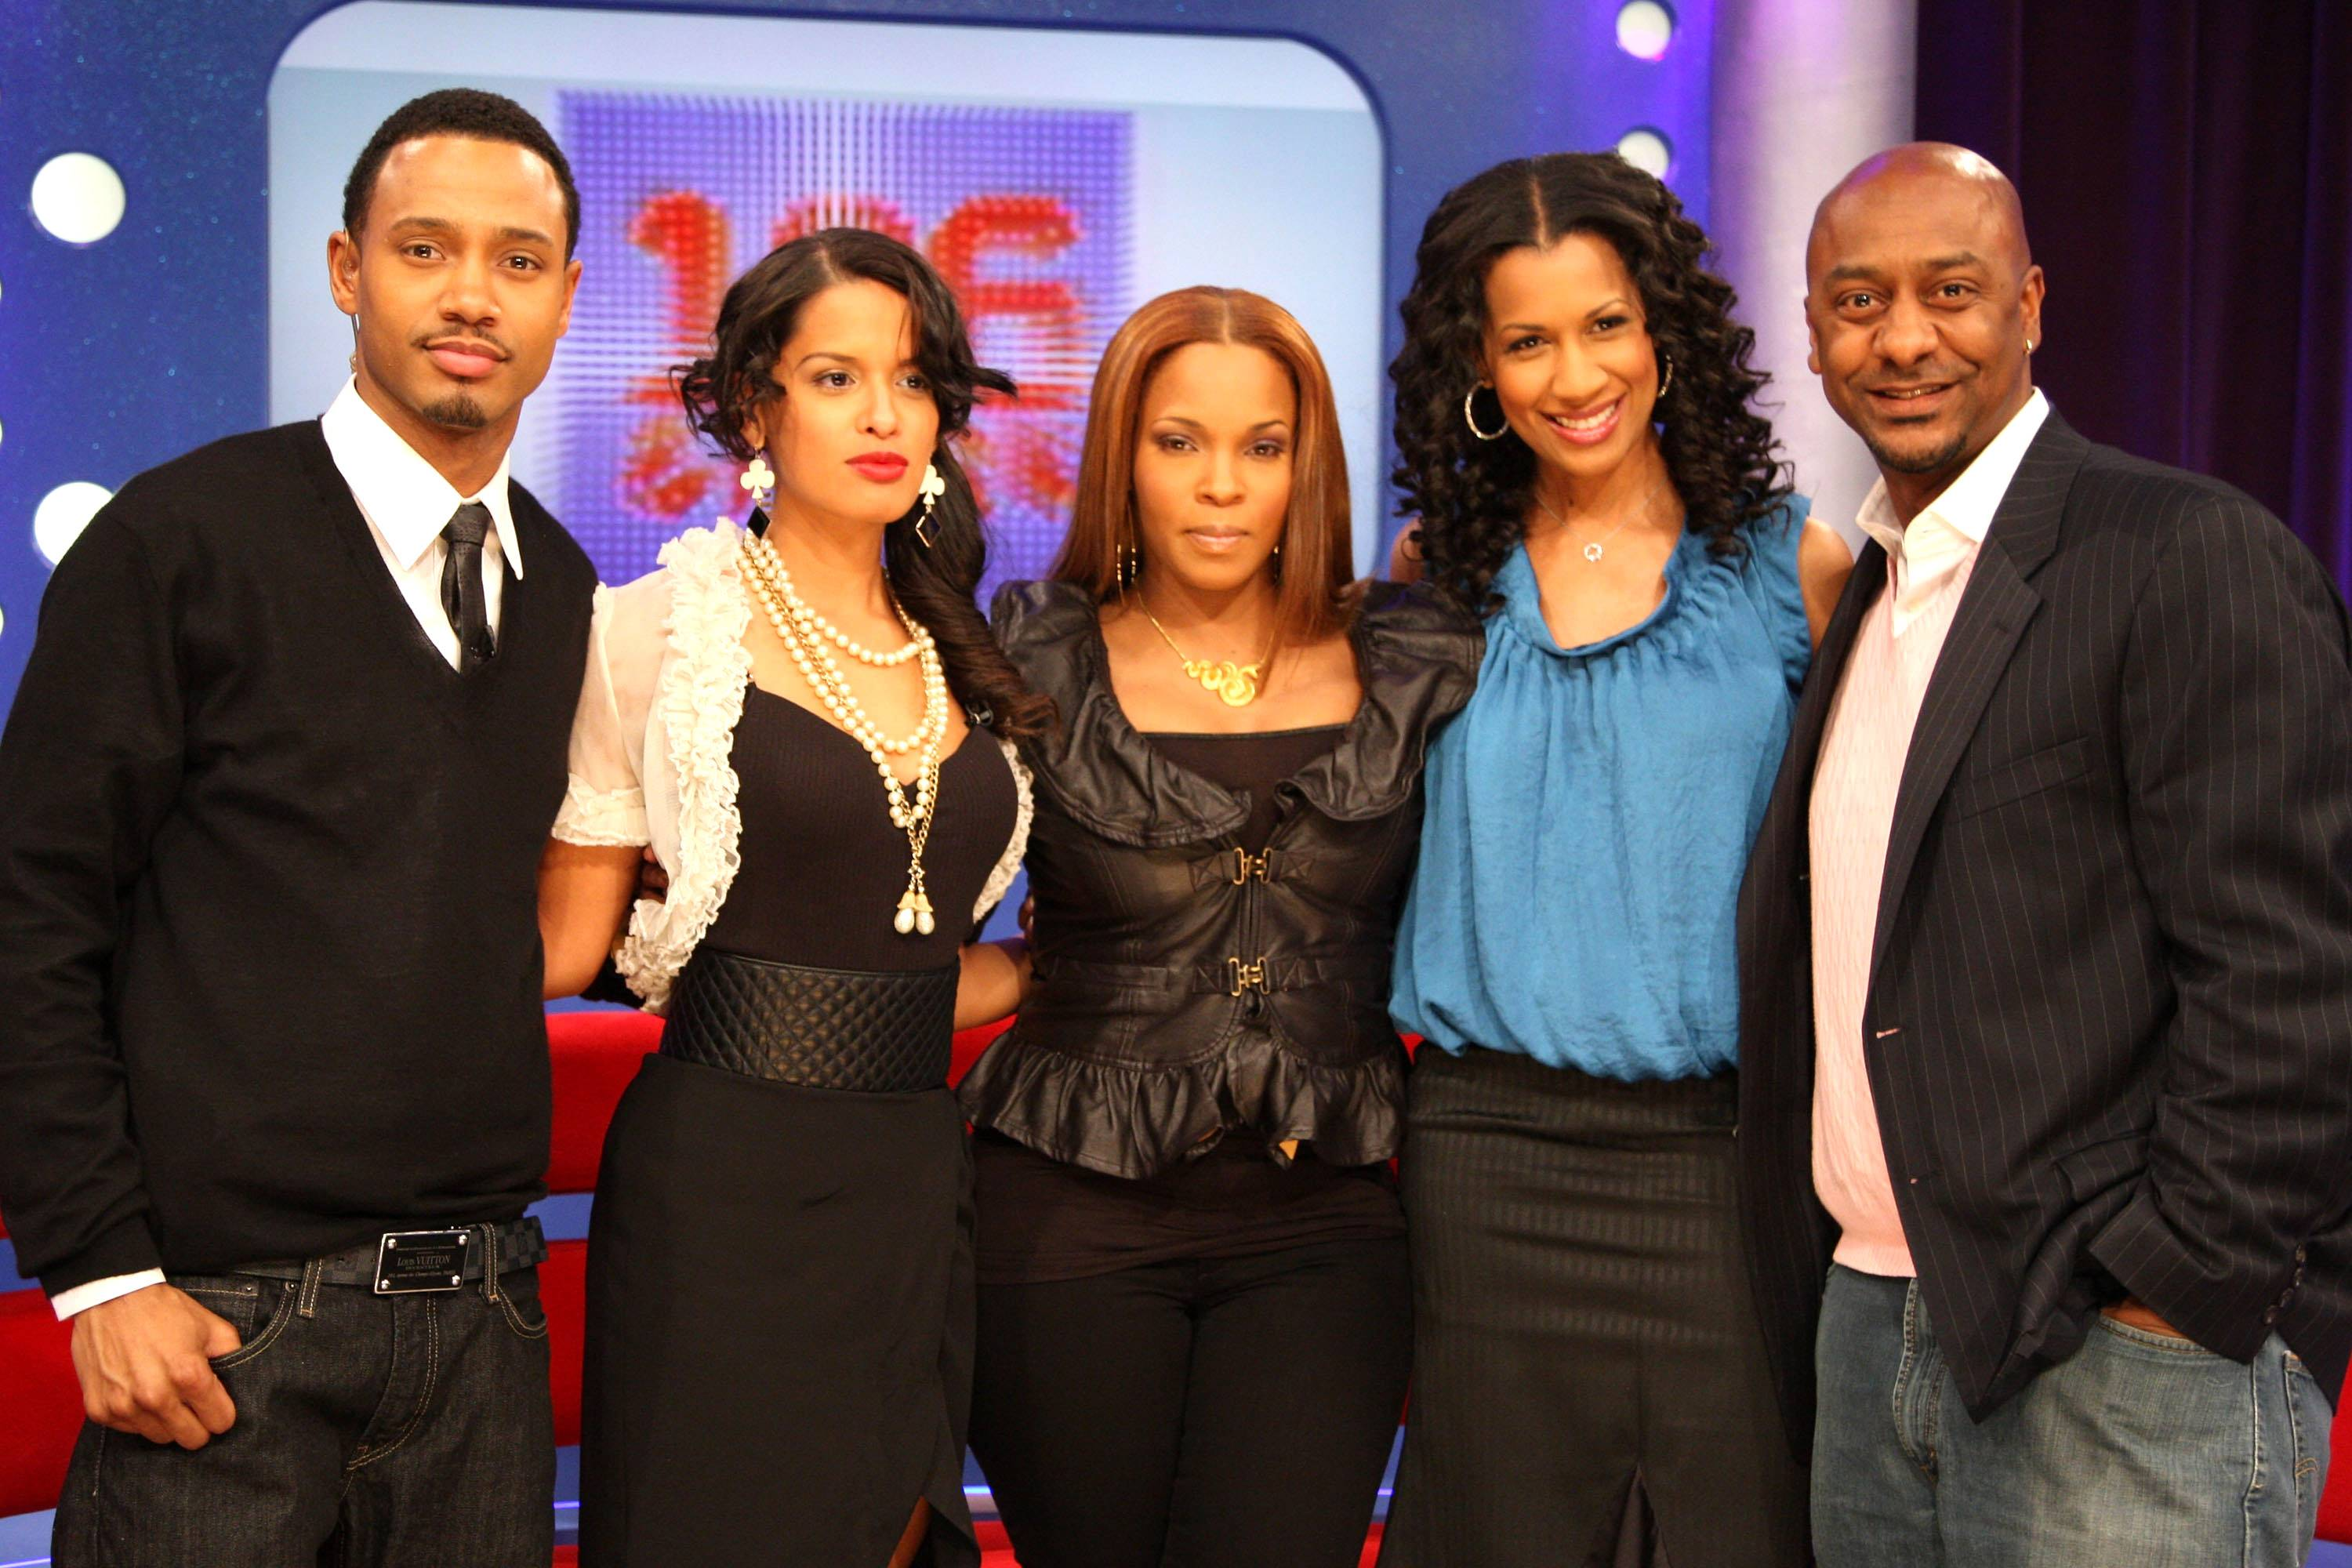 Opening Up - In 2009, Free returned to 106 & Park for the first time in four years to discuss domestic violence. Free shared with the world her experiences of domestic abuse as a teen.(Photo by Bryan Bedder/Getty Images)